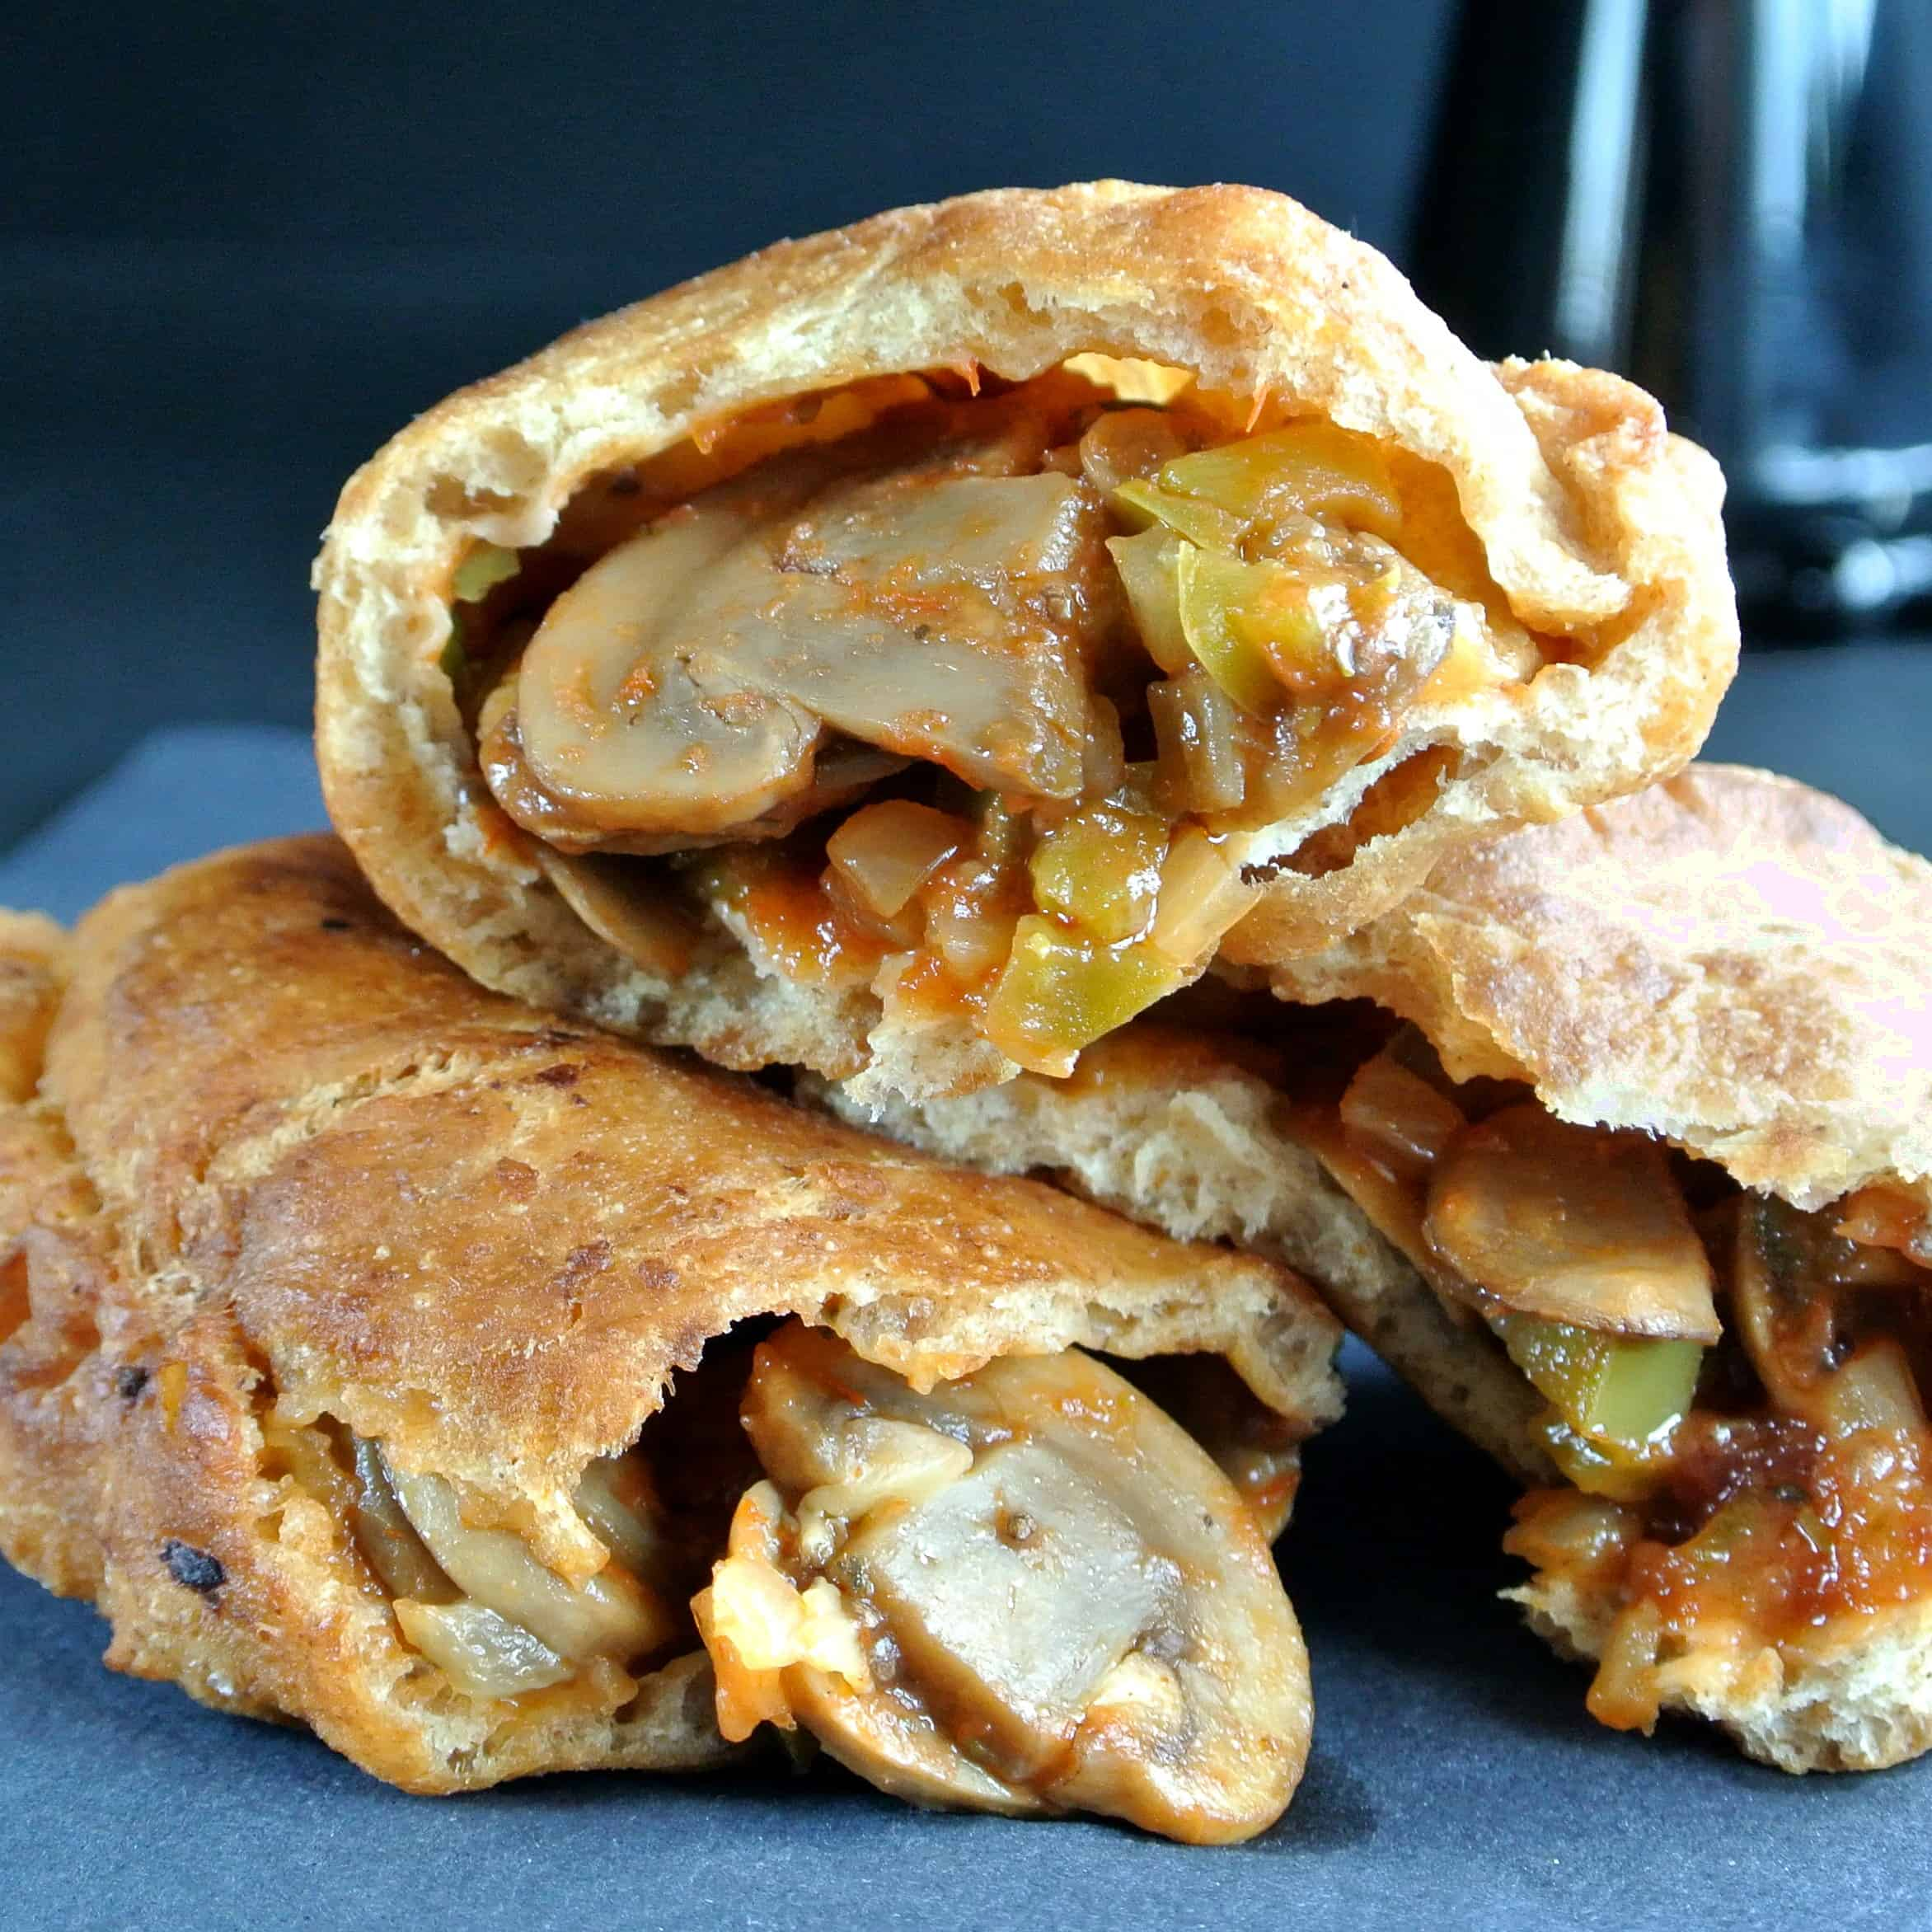 Extreme closeup photo of three savory fried dough pastries showing their mushroom filling inside.